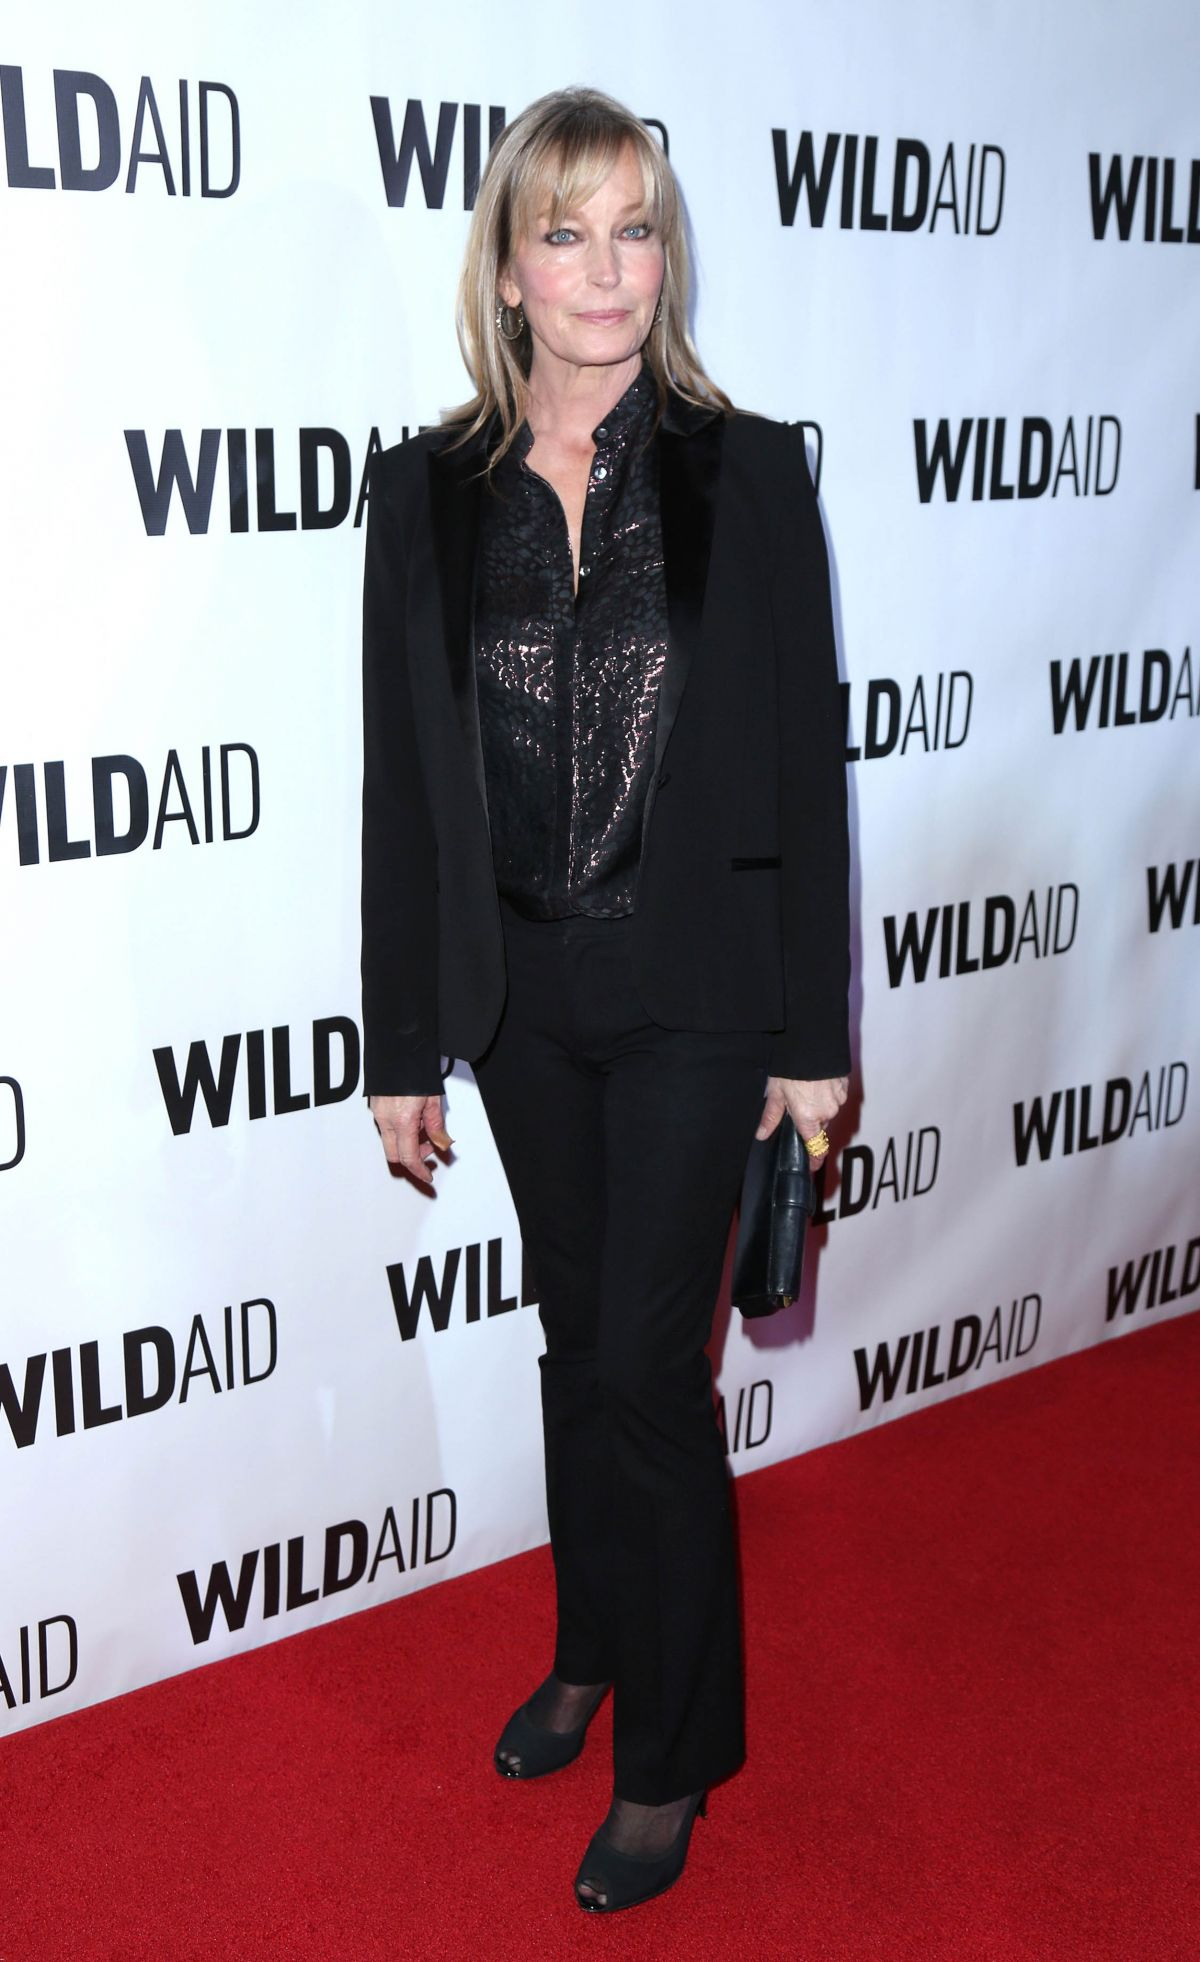 BO DEREK at Wildaid 2015 in Beverly Hills 11/07/2015